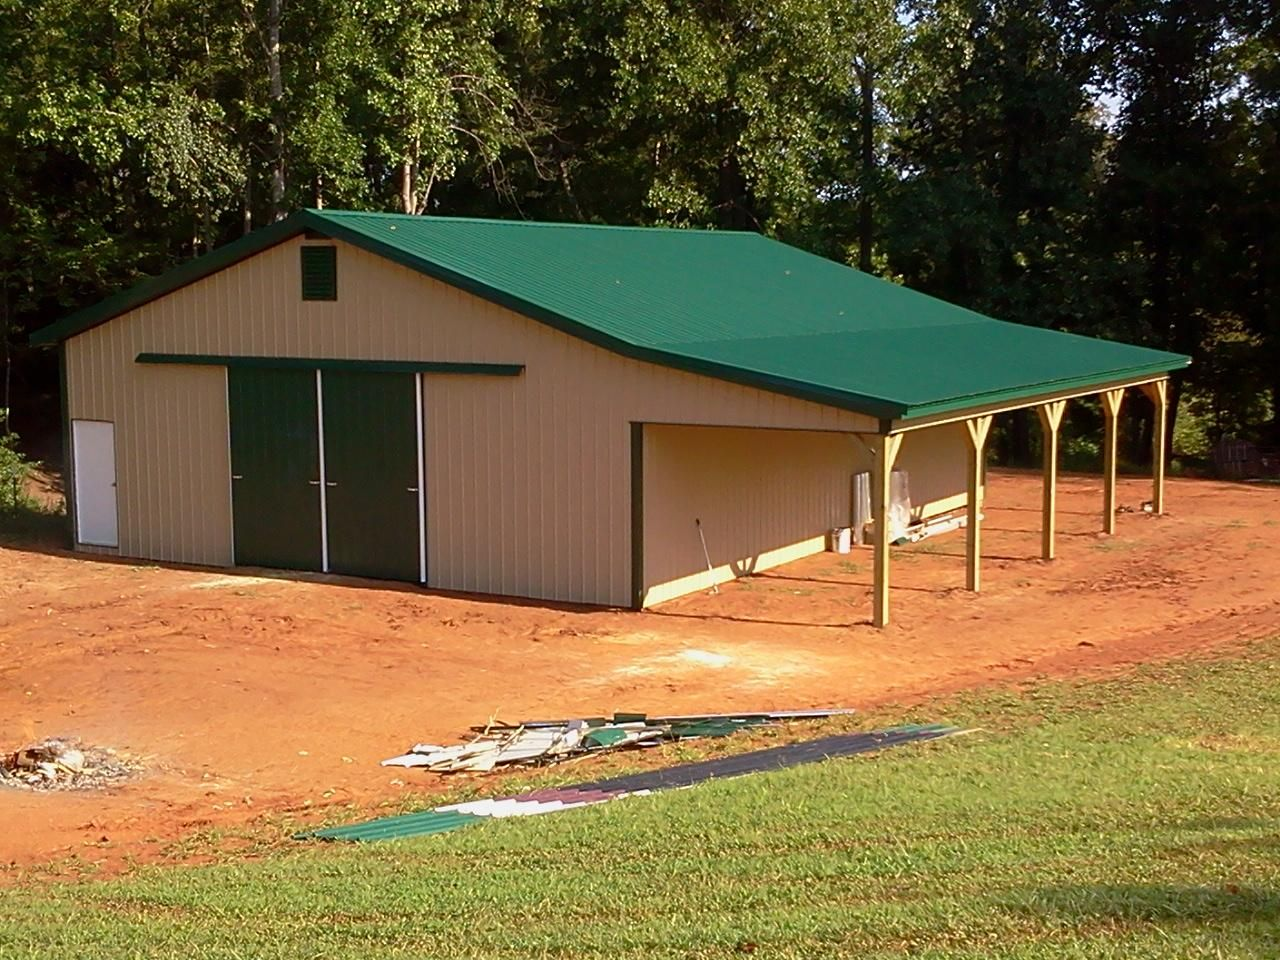 36x48x12 with 12x48 Shed - Post Frame Building - Horse Barn www ...